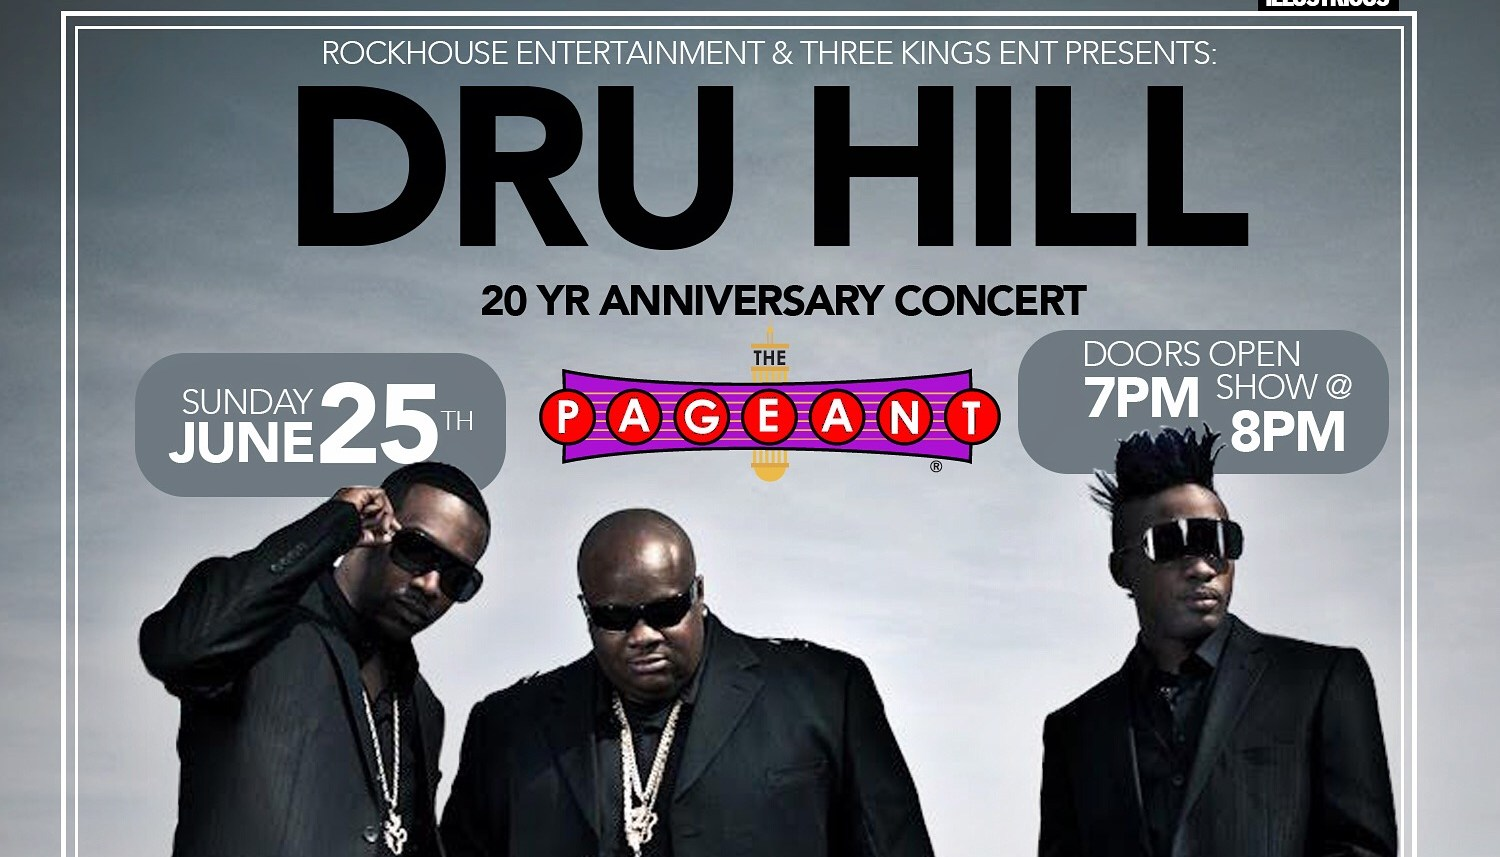 Dru Hill at the Pageant